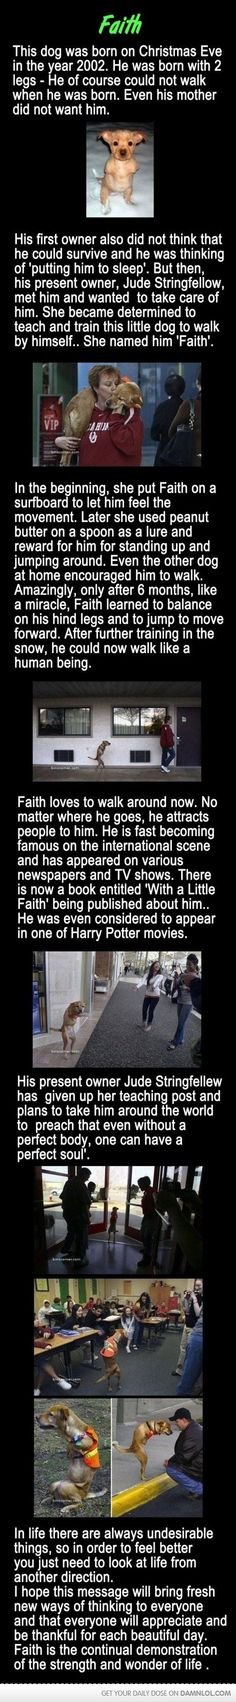 """Another tear jerking story! Always remember to have a little """"Faith"""""""